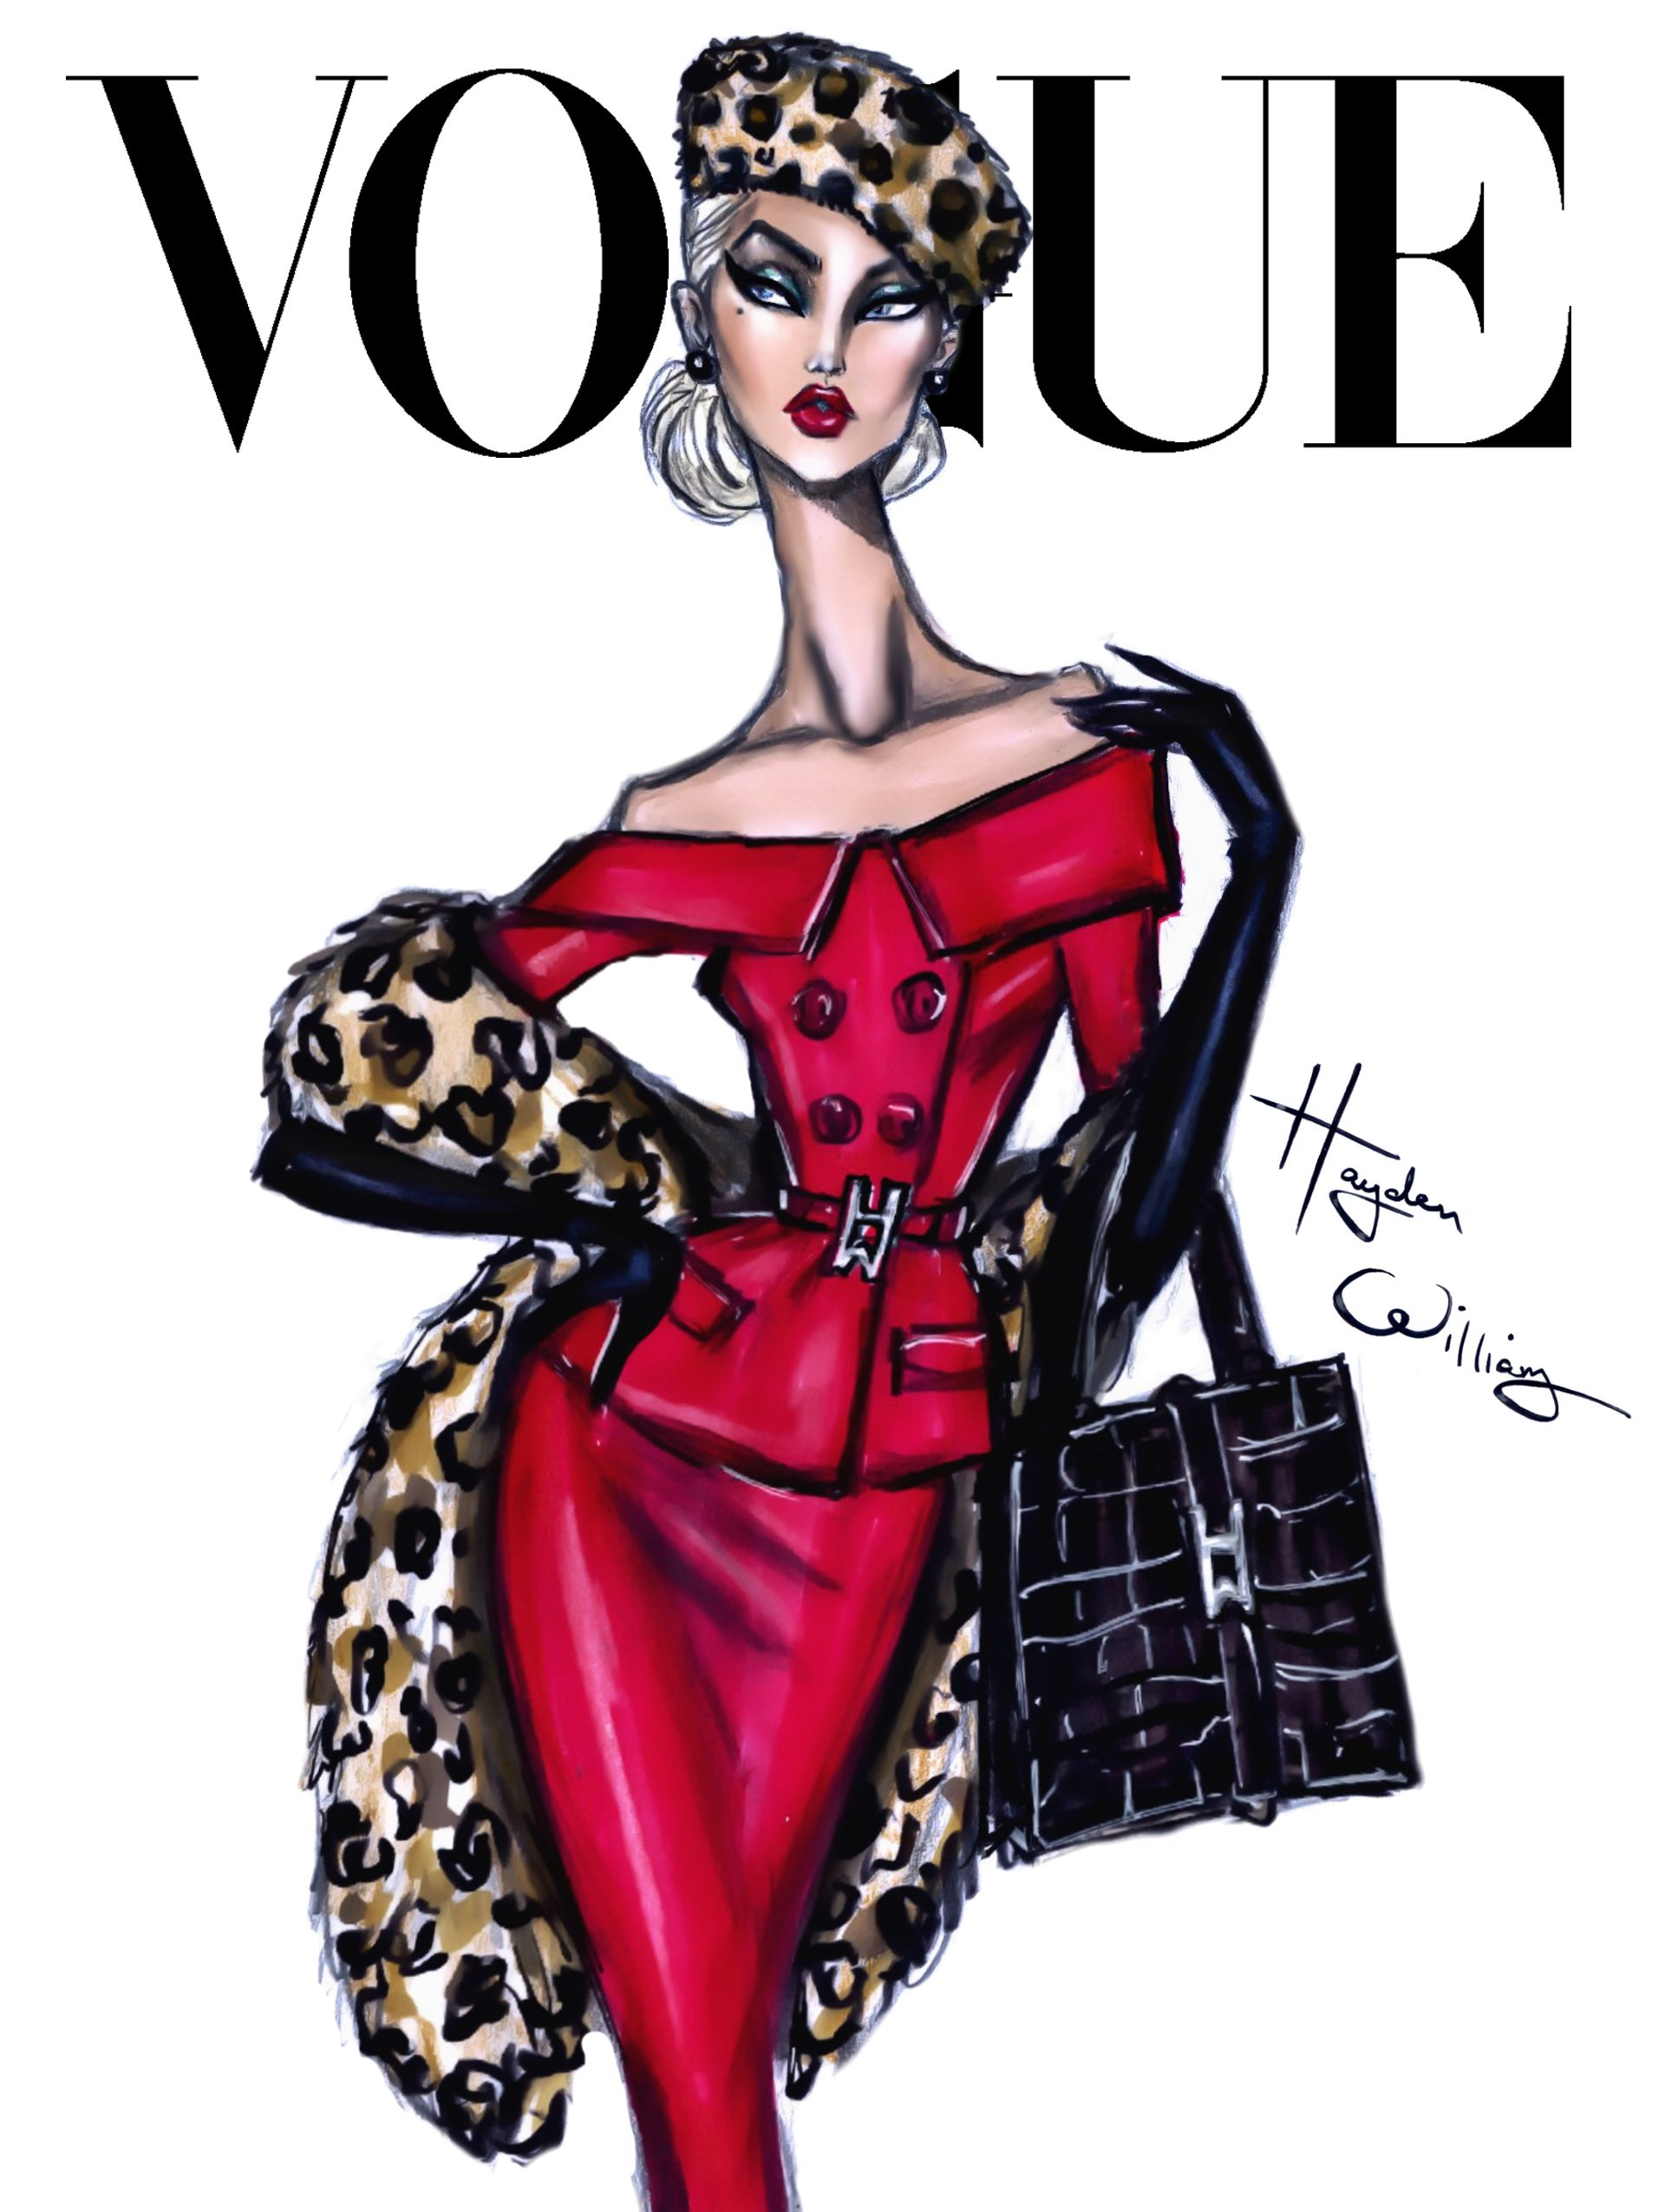 'Suit Me Up' by Hayden Williams #Vogue| Be Inspirational ❥|Mz. Manerz: Being well dressed is a beautiful form of confidence, happiness & politeness